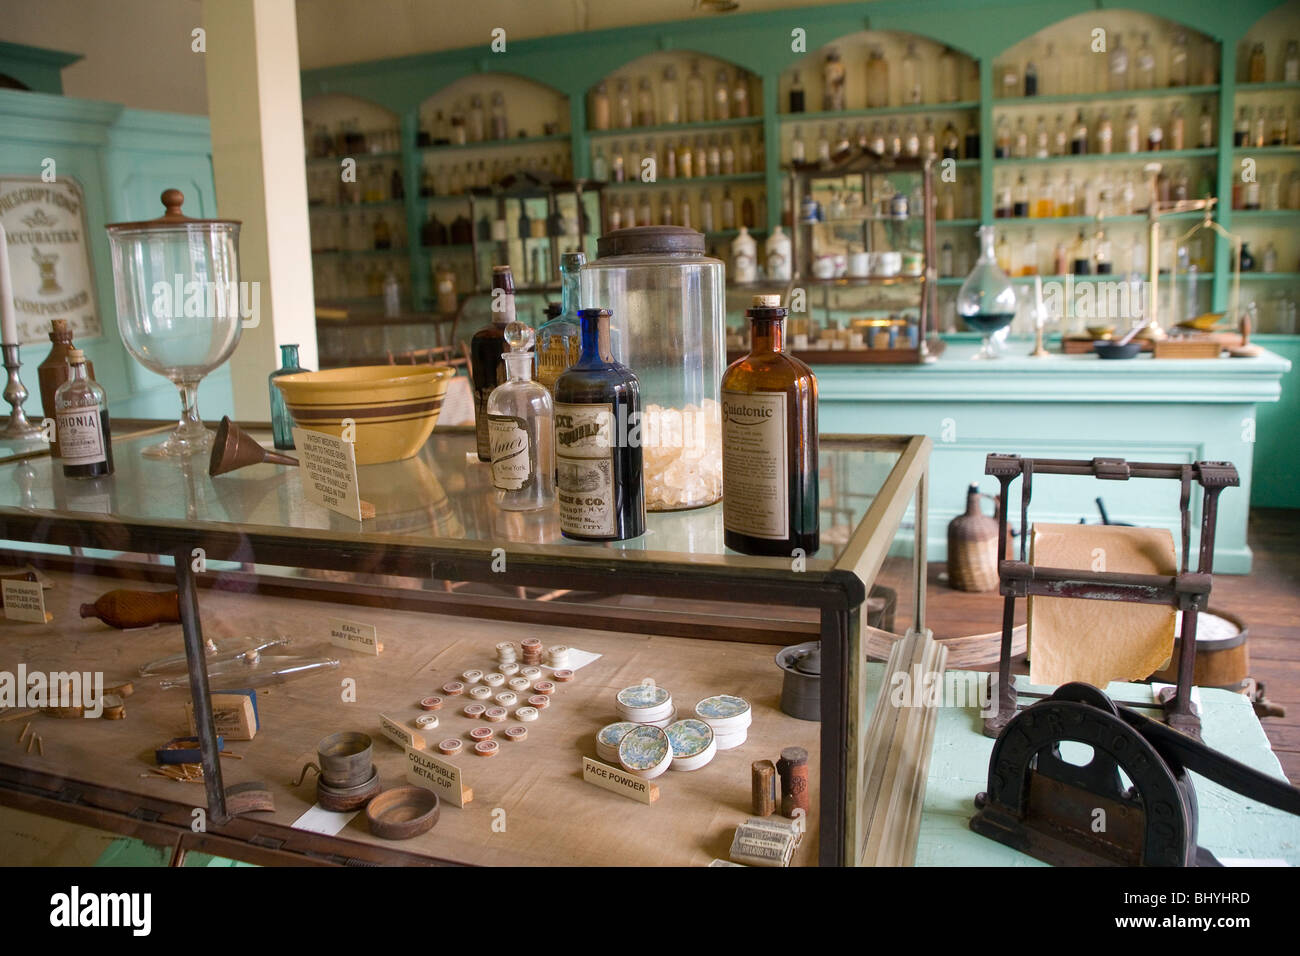 Grant's Drug Store - Maison pilastre Photo Stock